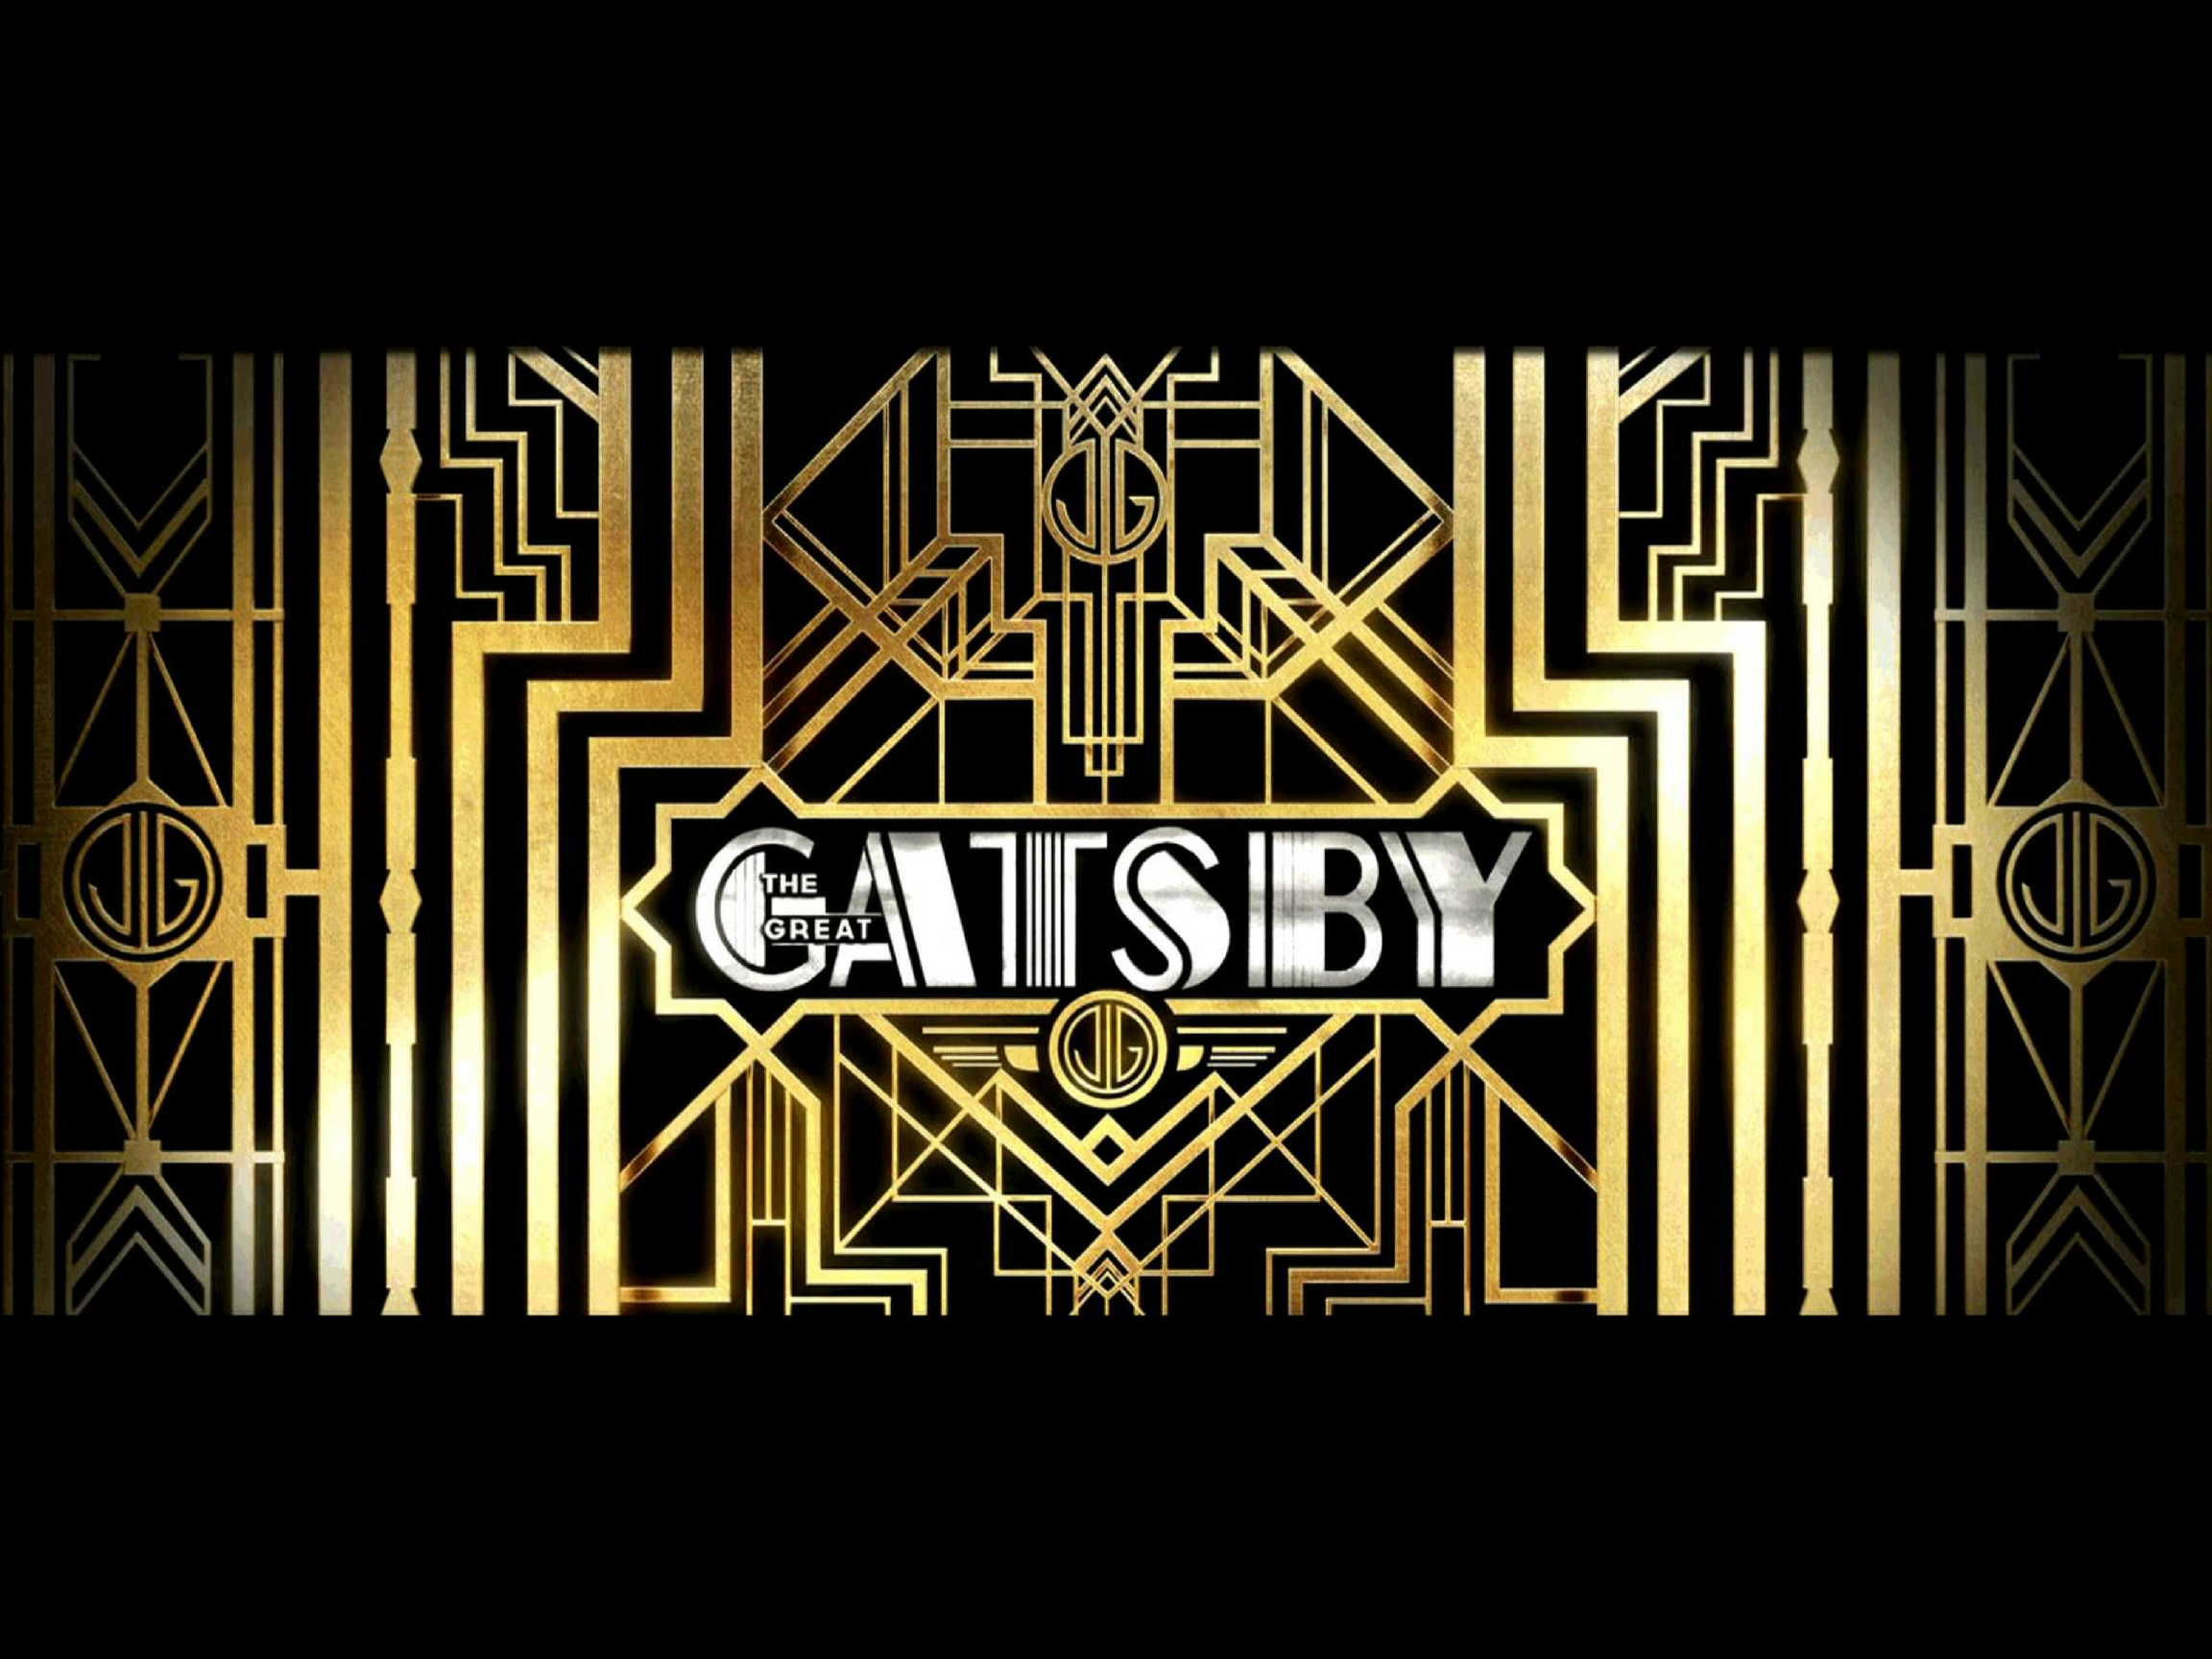 gatsby chapter 6 7 This is chapter six of the great gatsby by f scott fitzgerald it was created using the ipad pro and explain everything ™ interactive whiteboard for ipad.